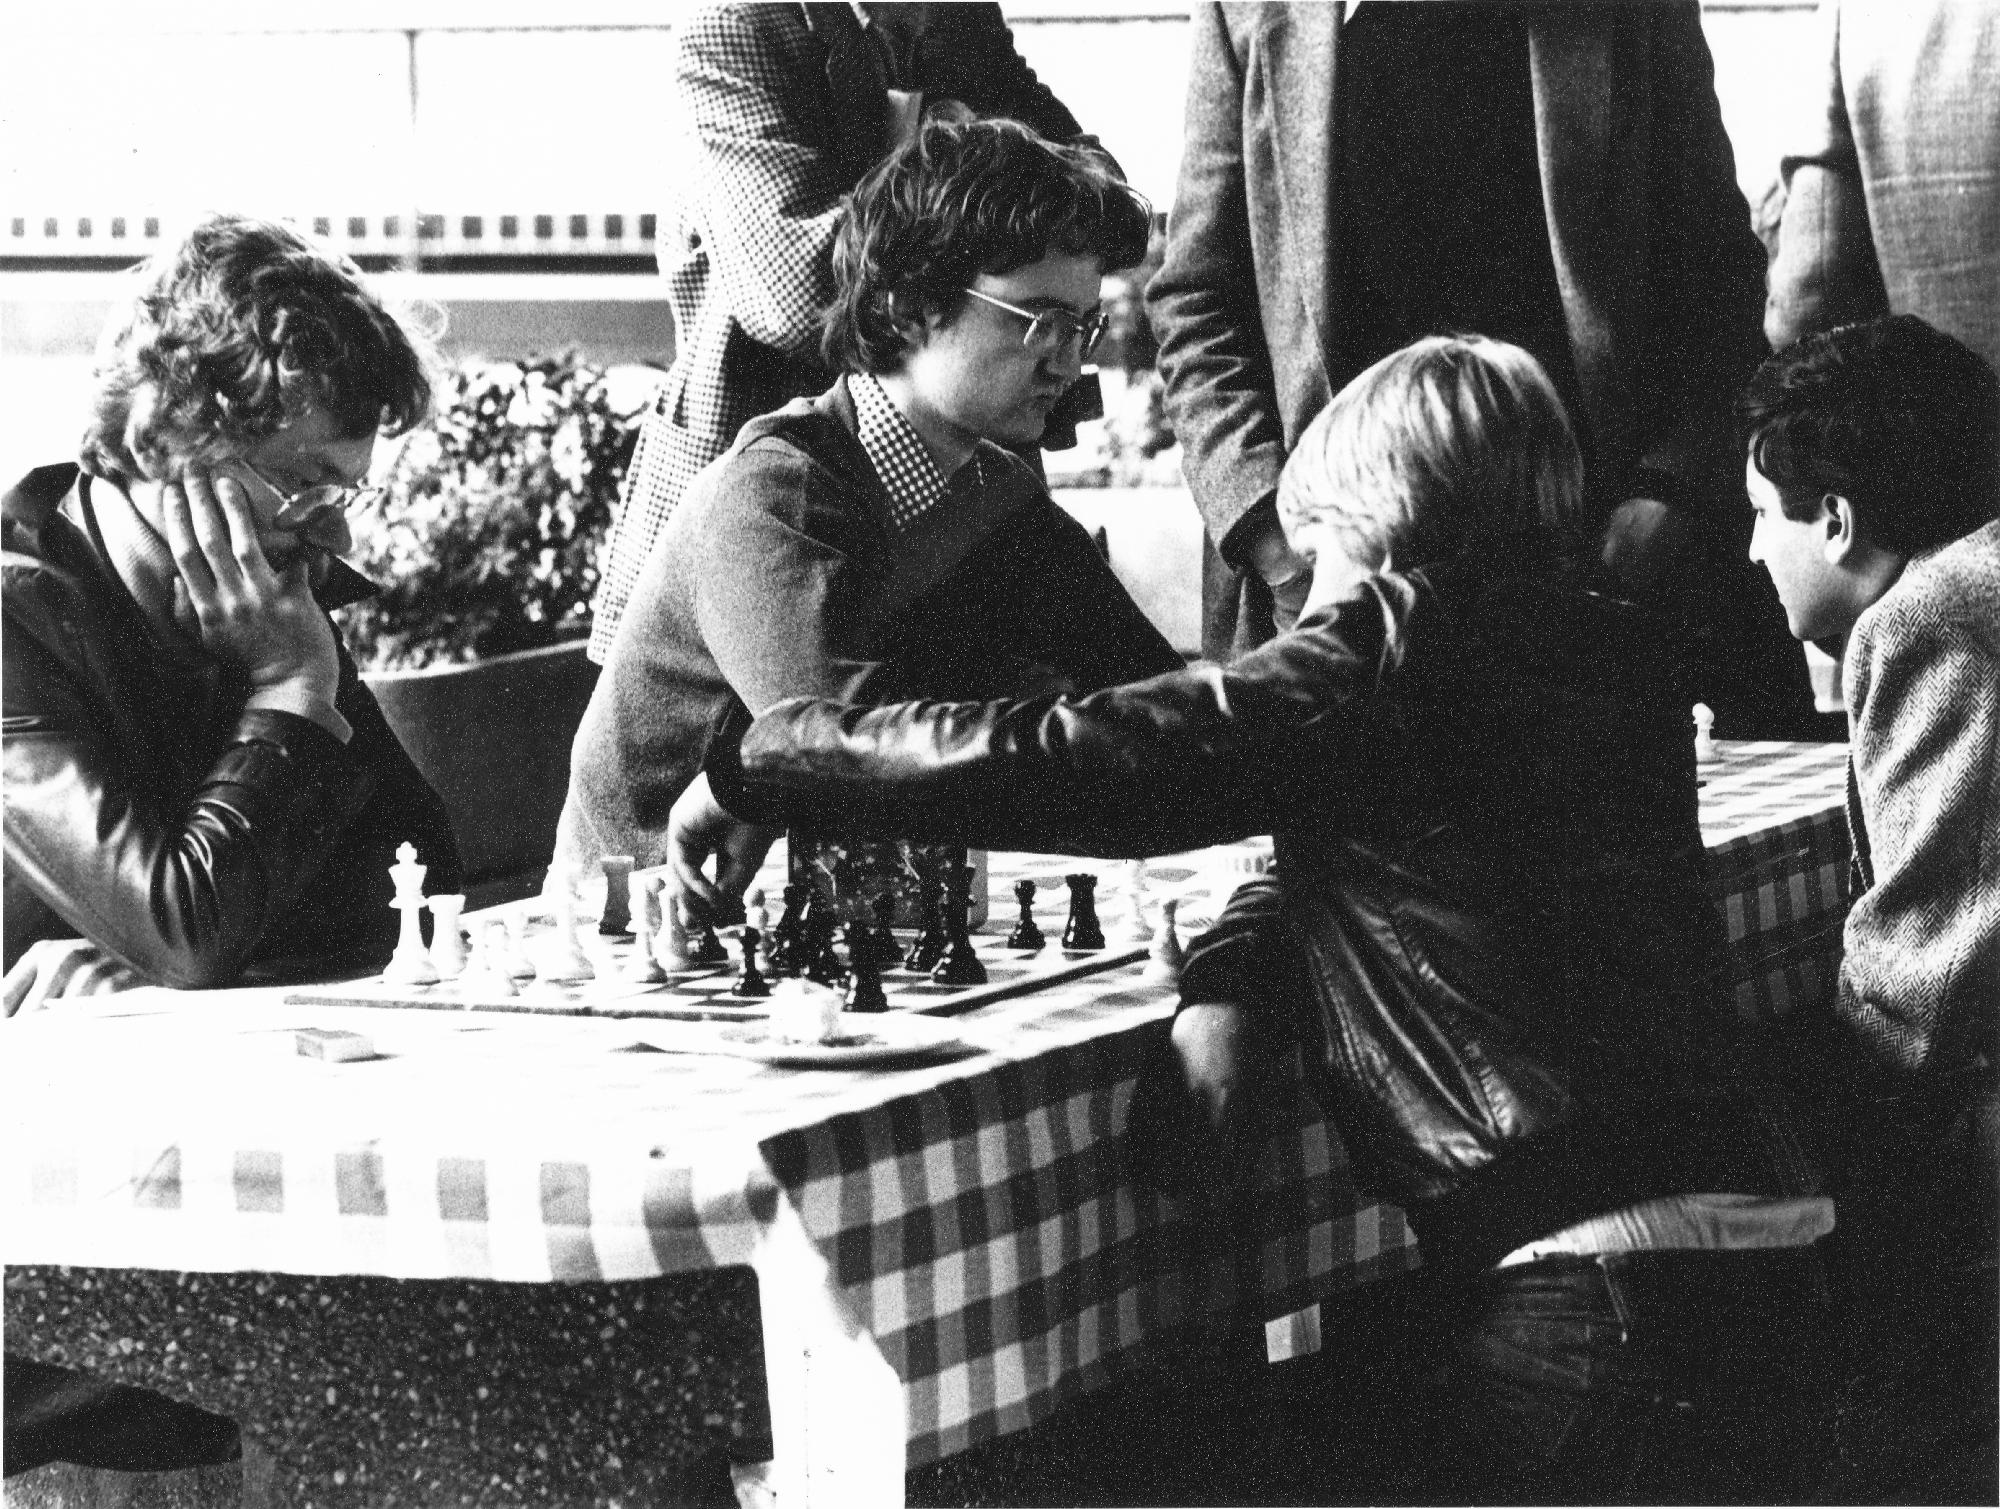 Neil Carr, (foreground, right)  at London's South Bank, Peter Sowray in the background.. Photo by Clive Field, London Chess Association